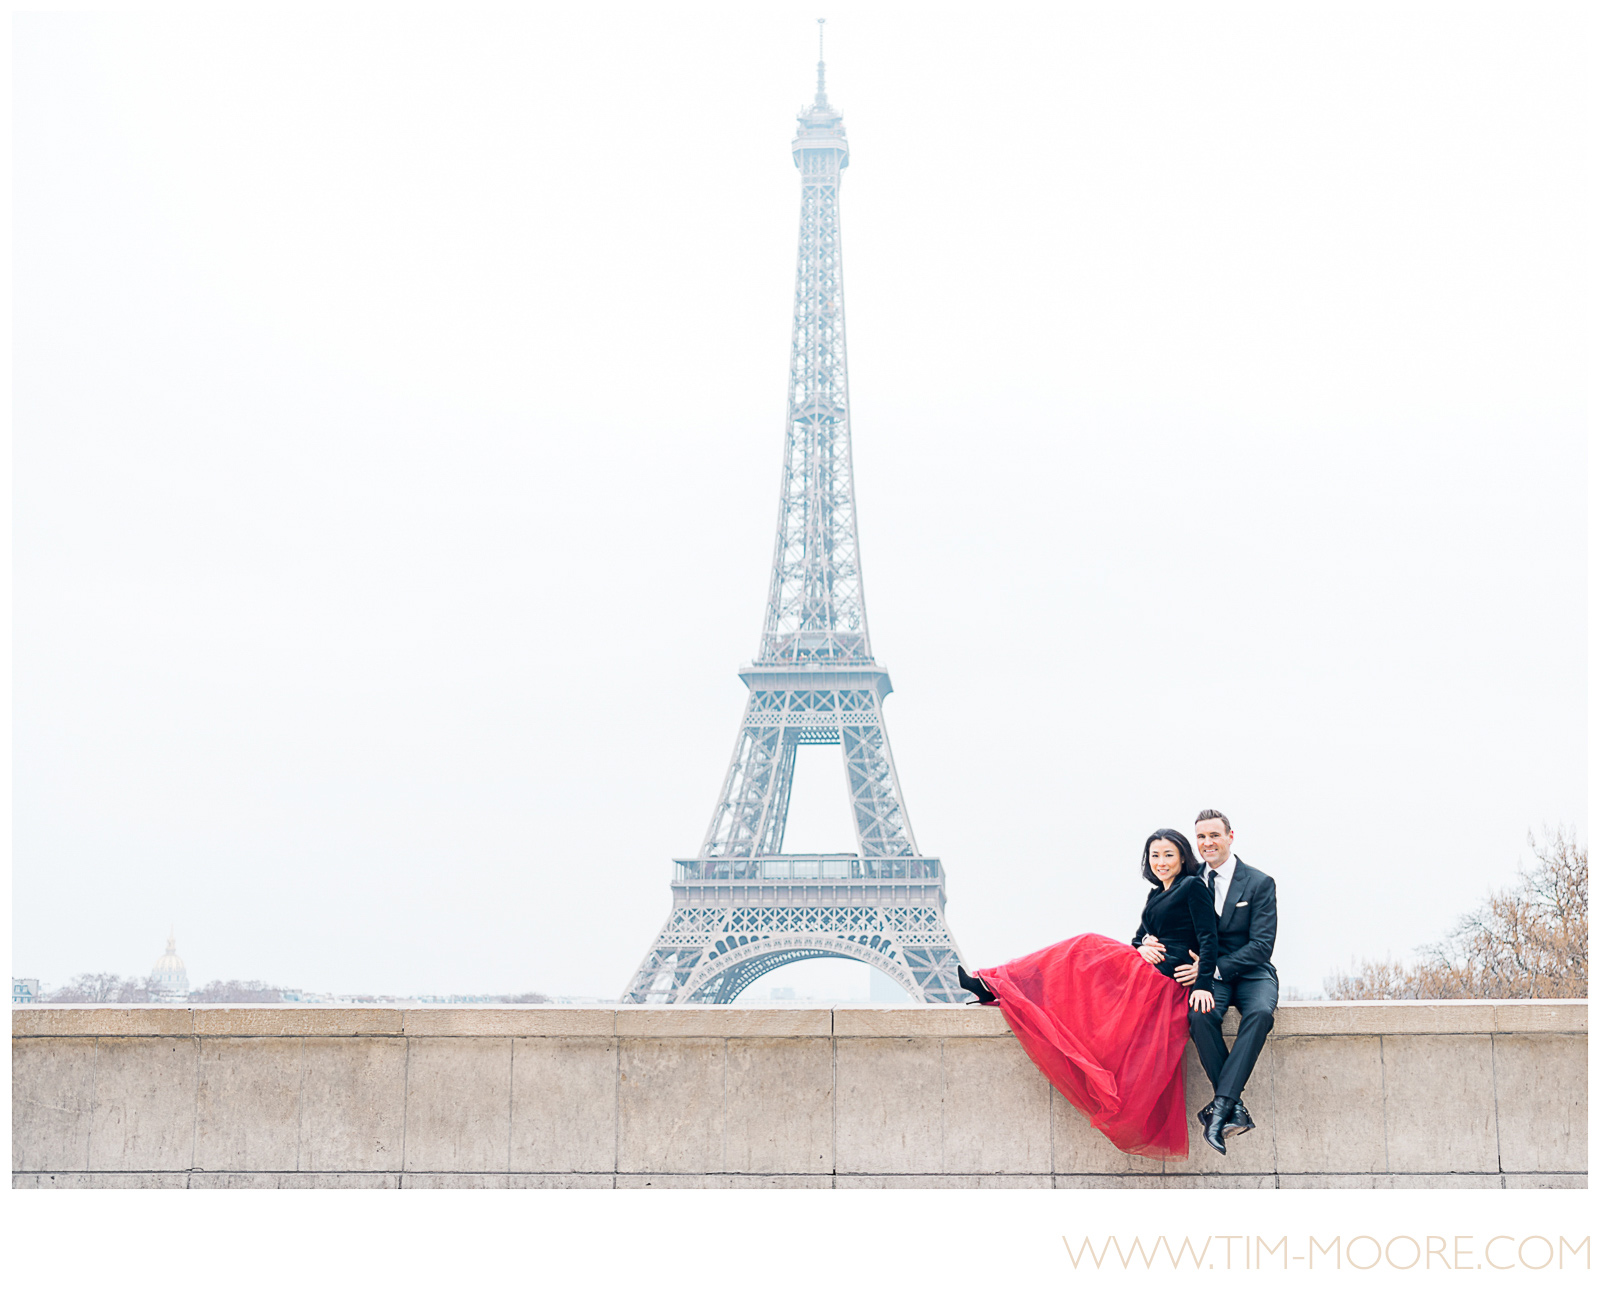 Paris photographer Tim Moore - Jennifer and Scott having some quality time together enjoying the fantastic view on the Eiffel Tower during their Paris photo shoot.